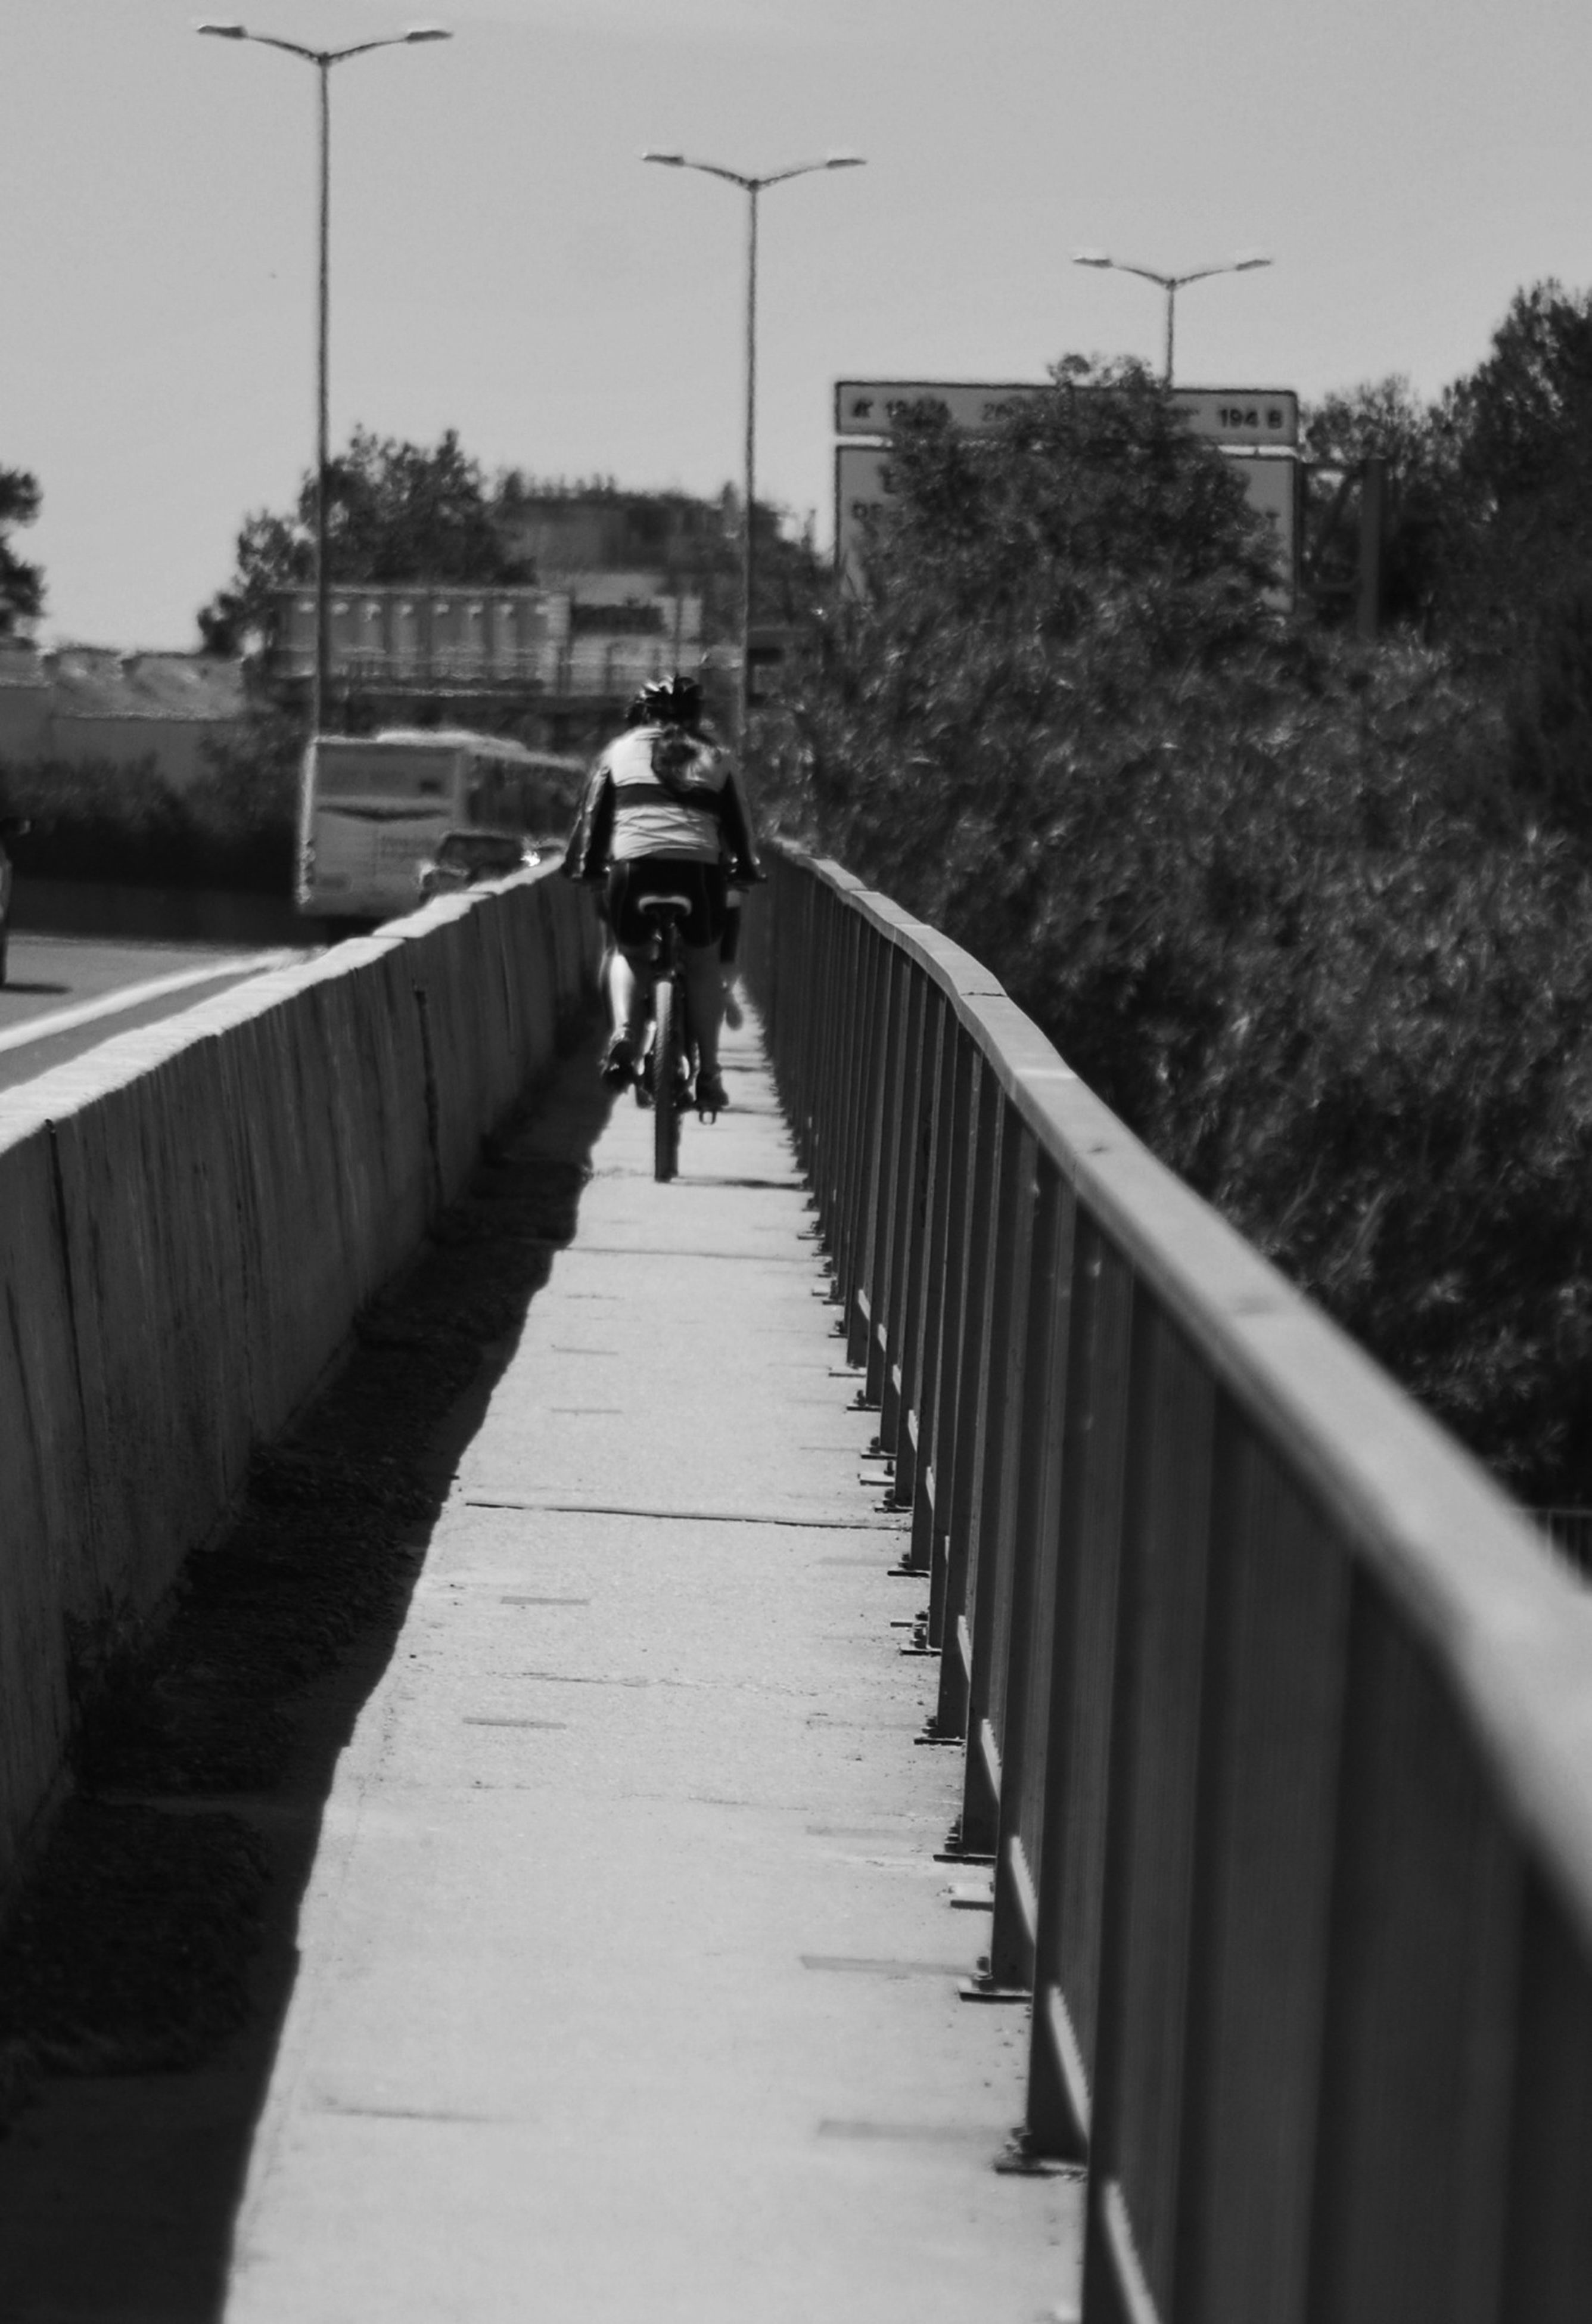 full length, the way forward, rear view, walking, lifestyles, men, leisure activity, transportation, diminishing perspective, bicycle, on the move, riding, railing, vanishing point, person, tree, casual clothing